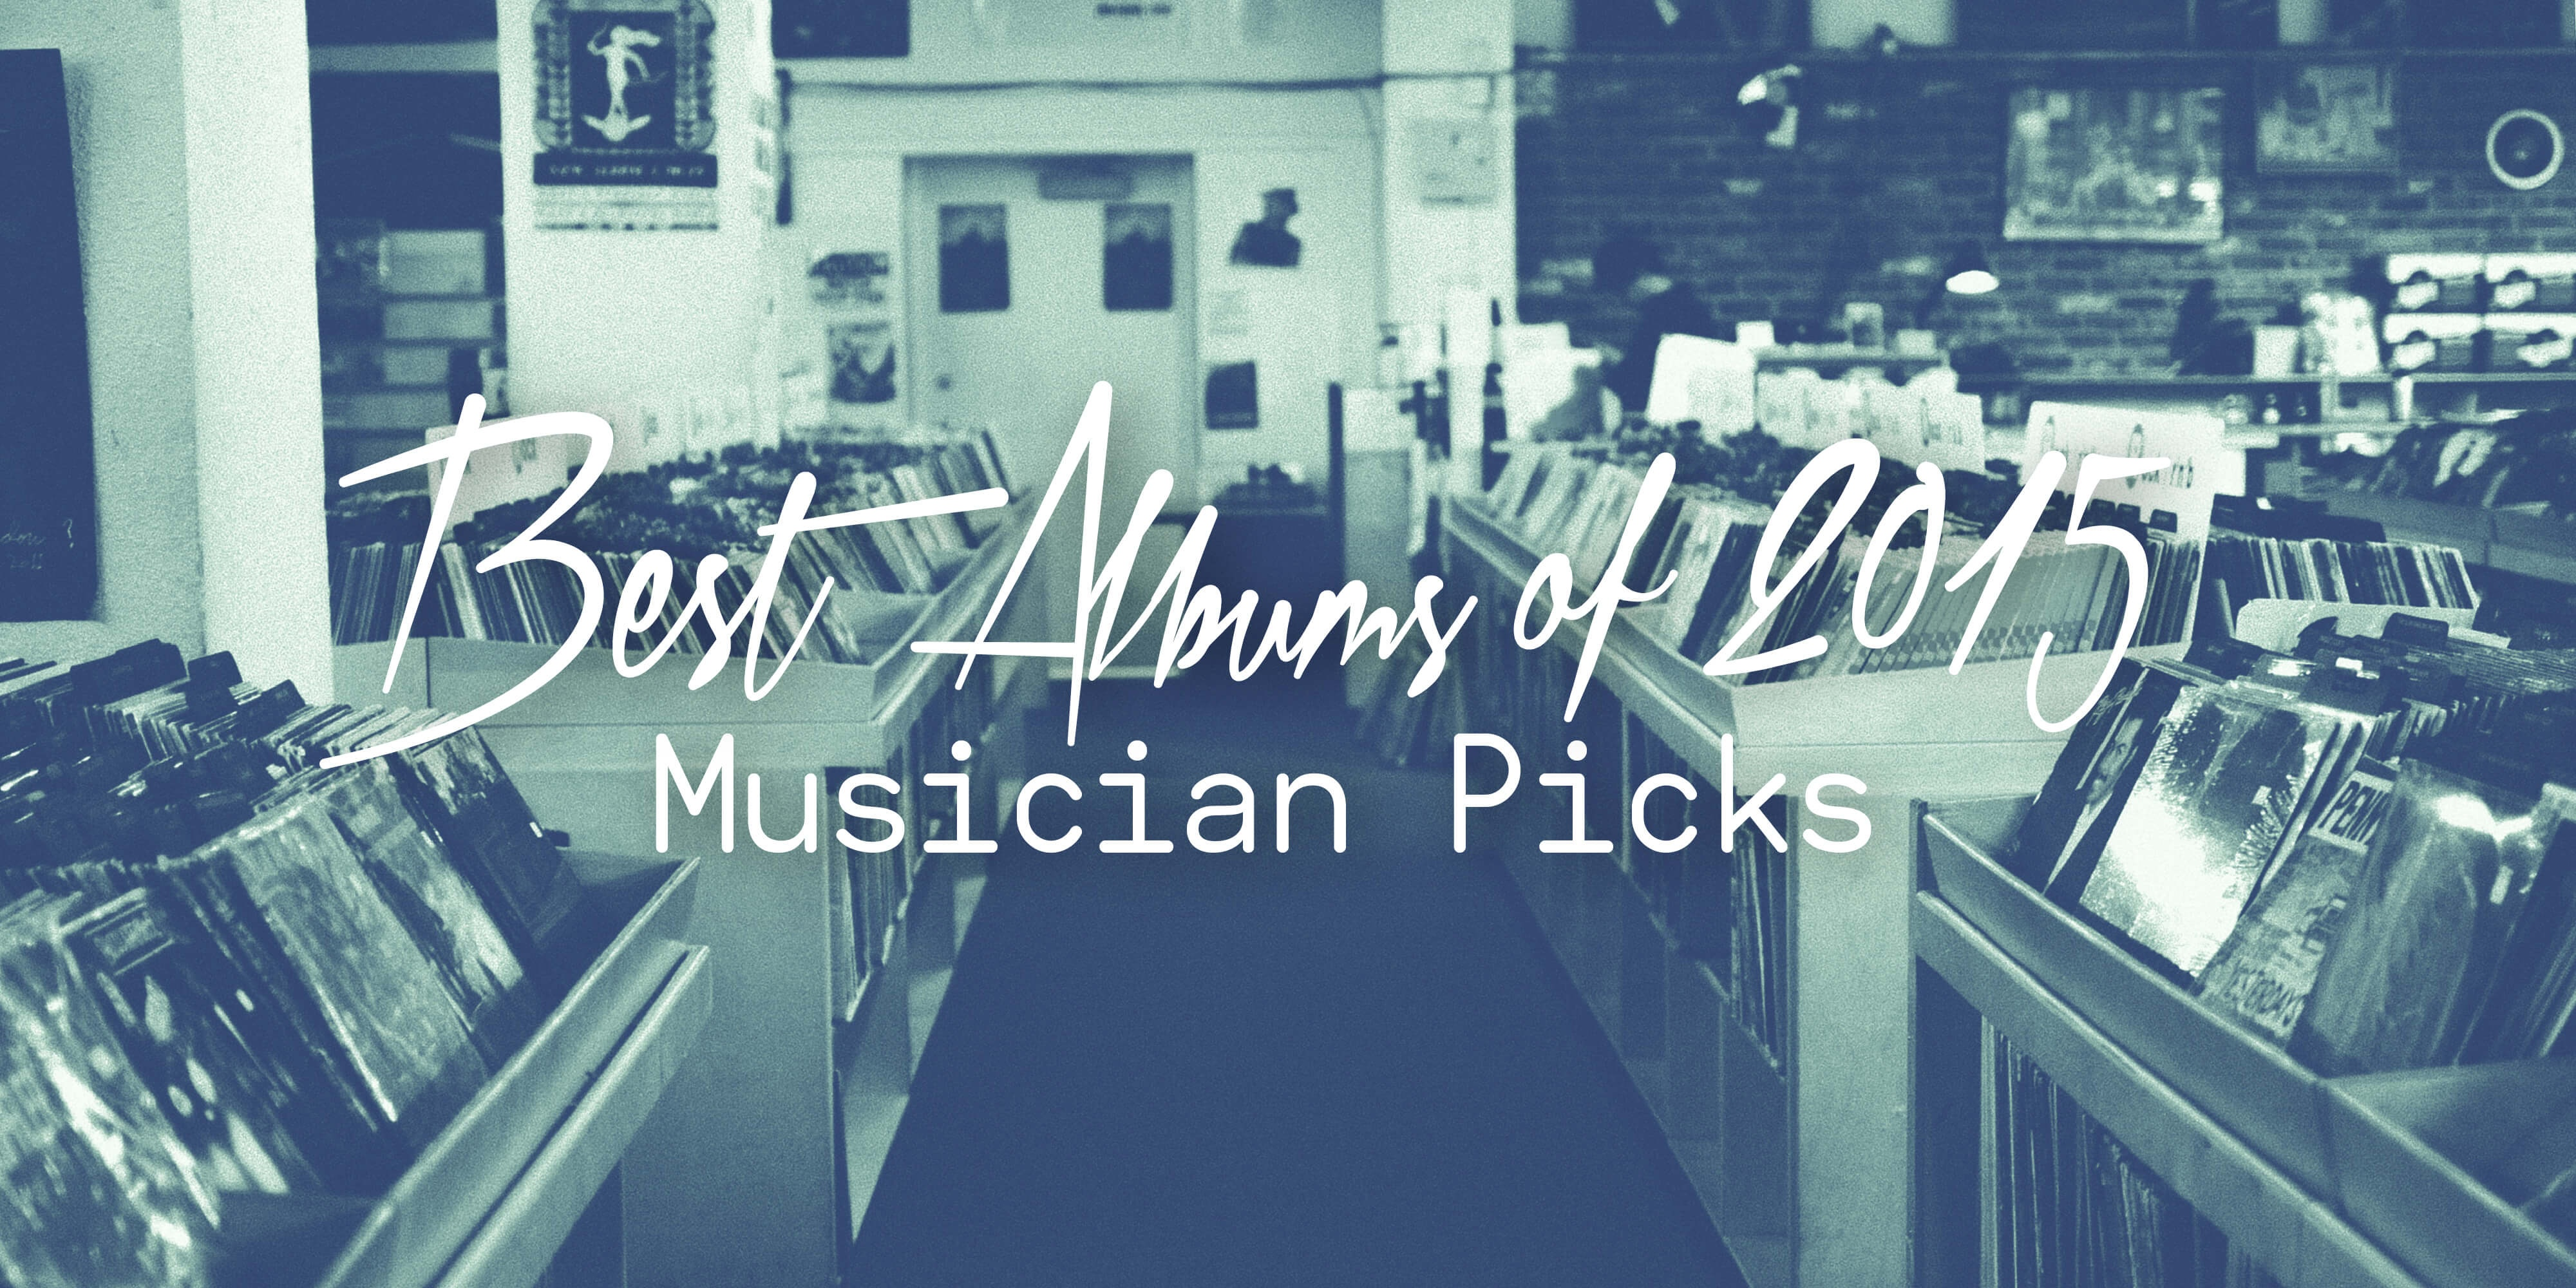 Best Albums of 2015: Musician Picks